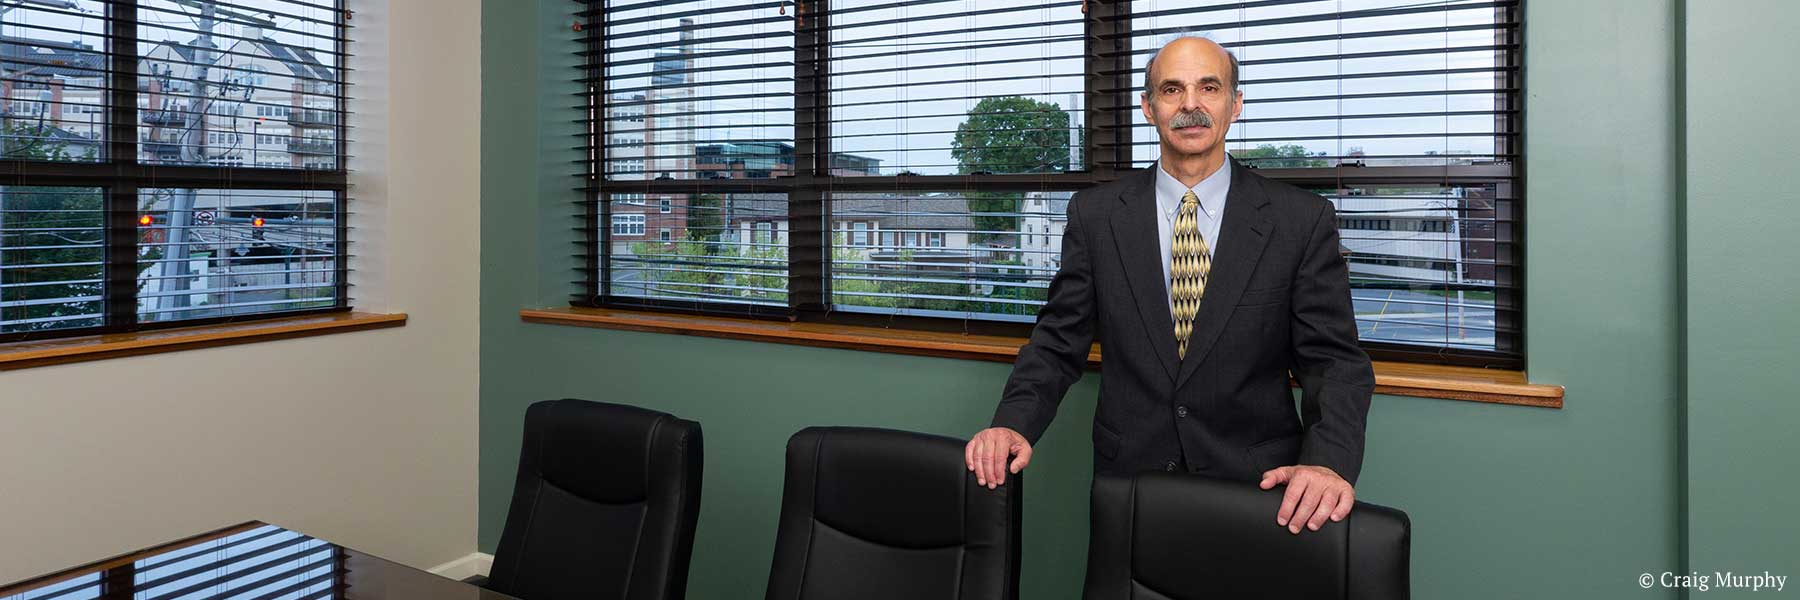 New York State lawyer Neil H. Lebowitz posing in conference room with Glens Falls, New York cityscape view in background. Photographer: Craig Murphy. Copyright owner-licensor: Craig Murphy. Copyright licensee: Neil H. Lebowitz.